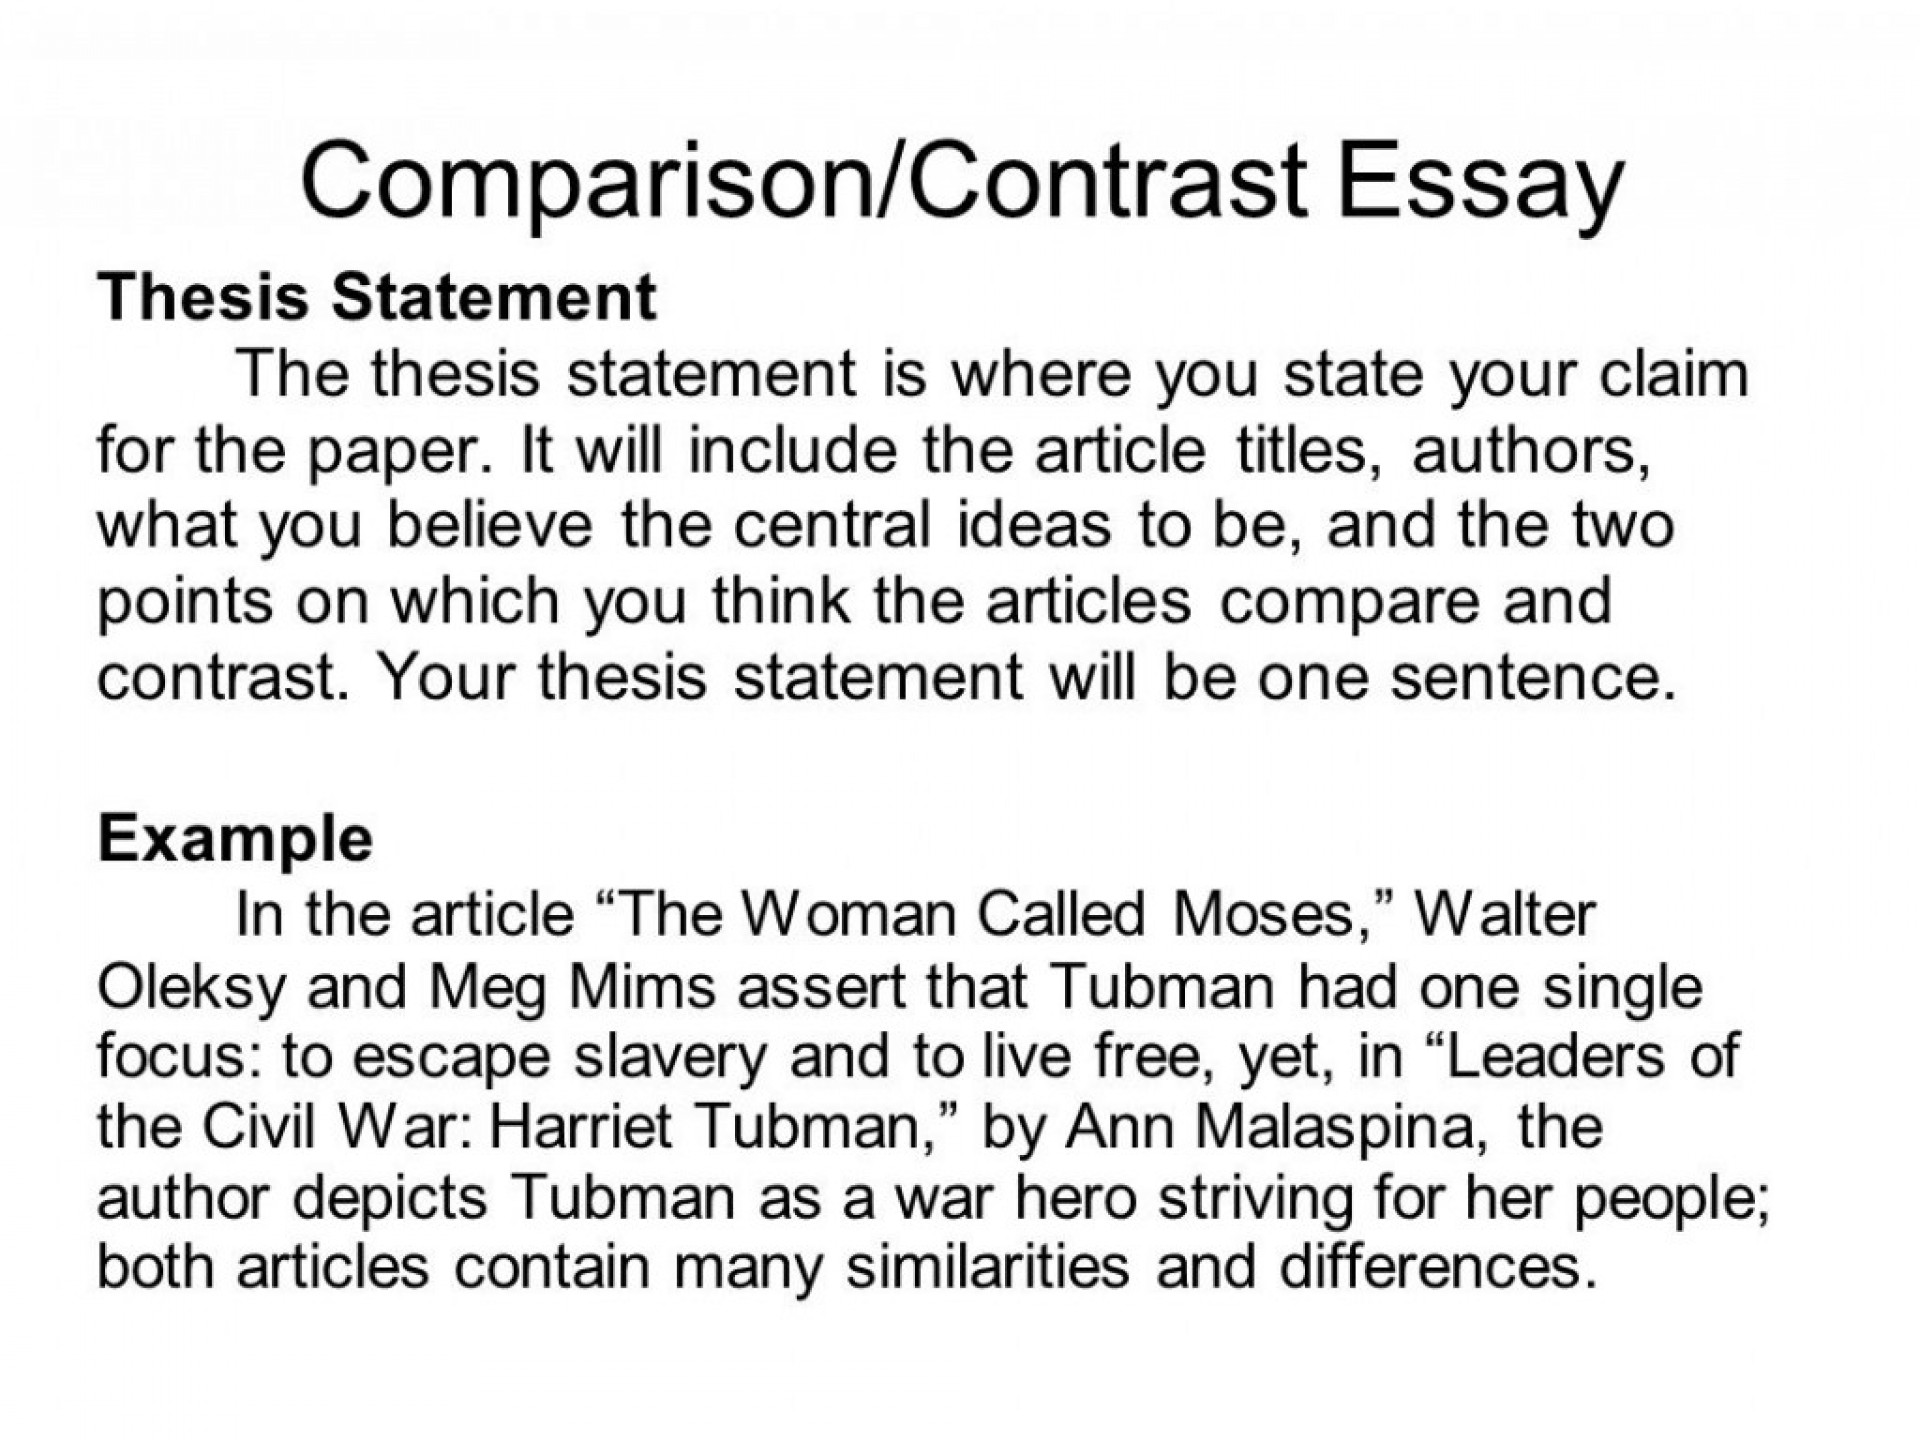 005 Write My Sample Comparative Essay Introduction Writing Portfolio With Mr Butner Due Date Compare Contrast How To Conclusion For And Awesome Example A Paragraph Examples 1920